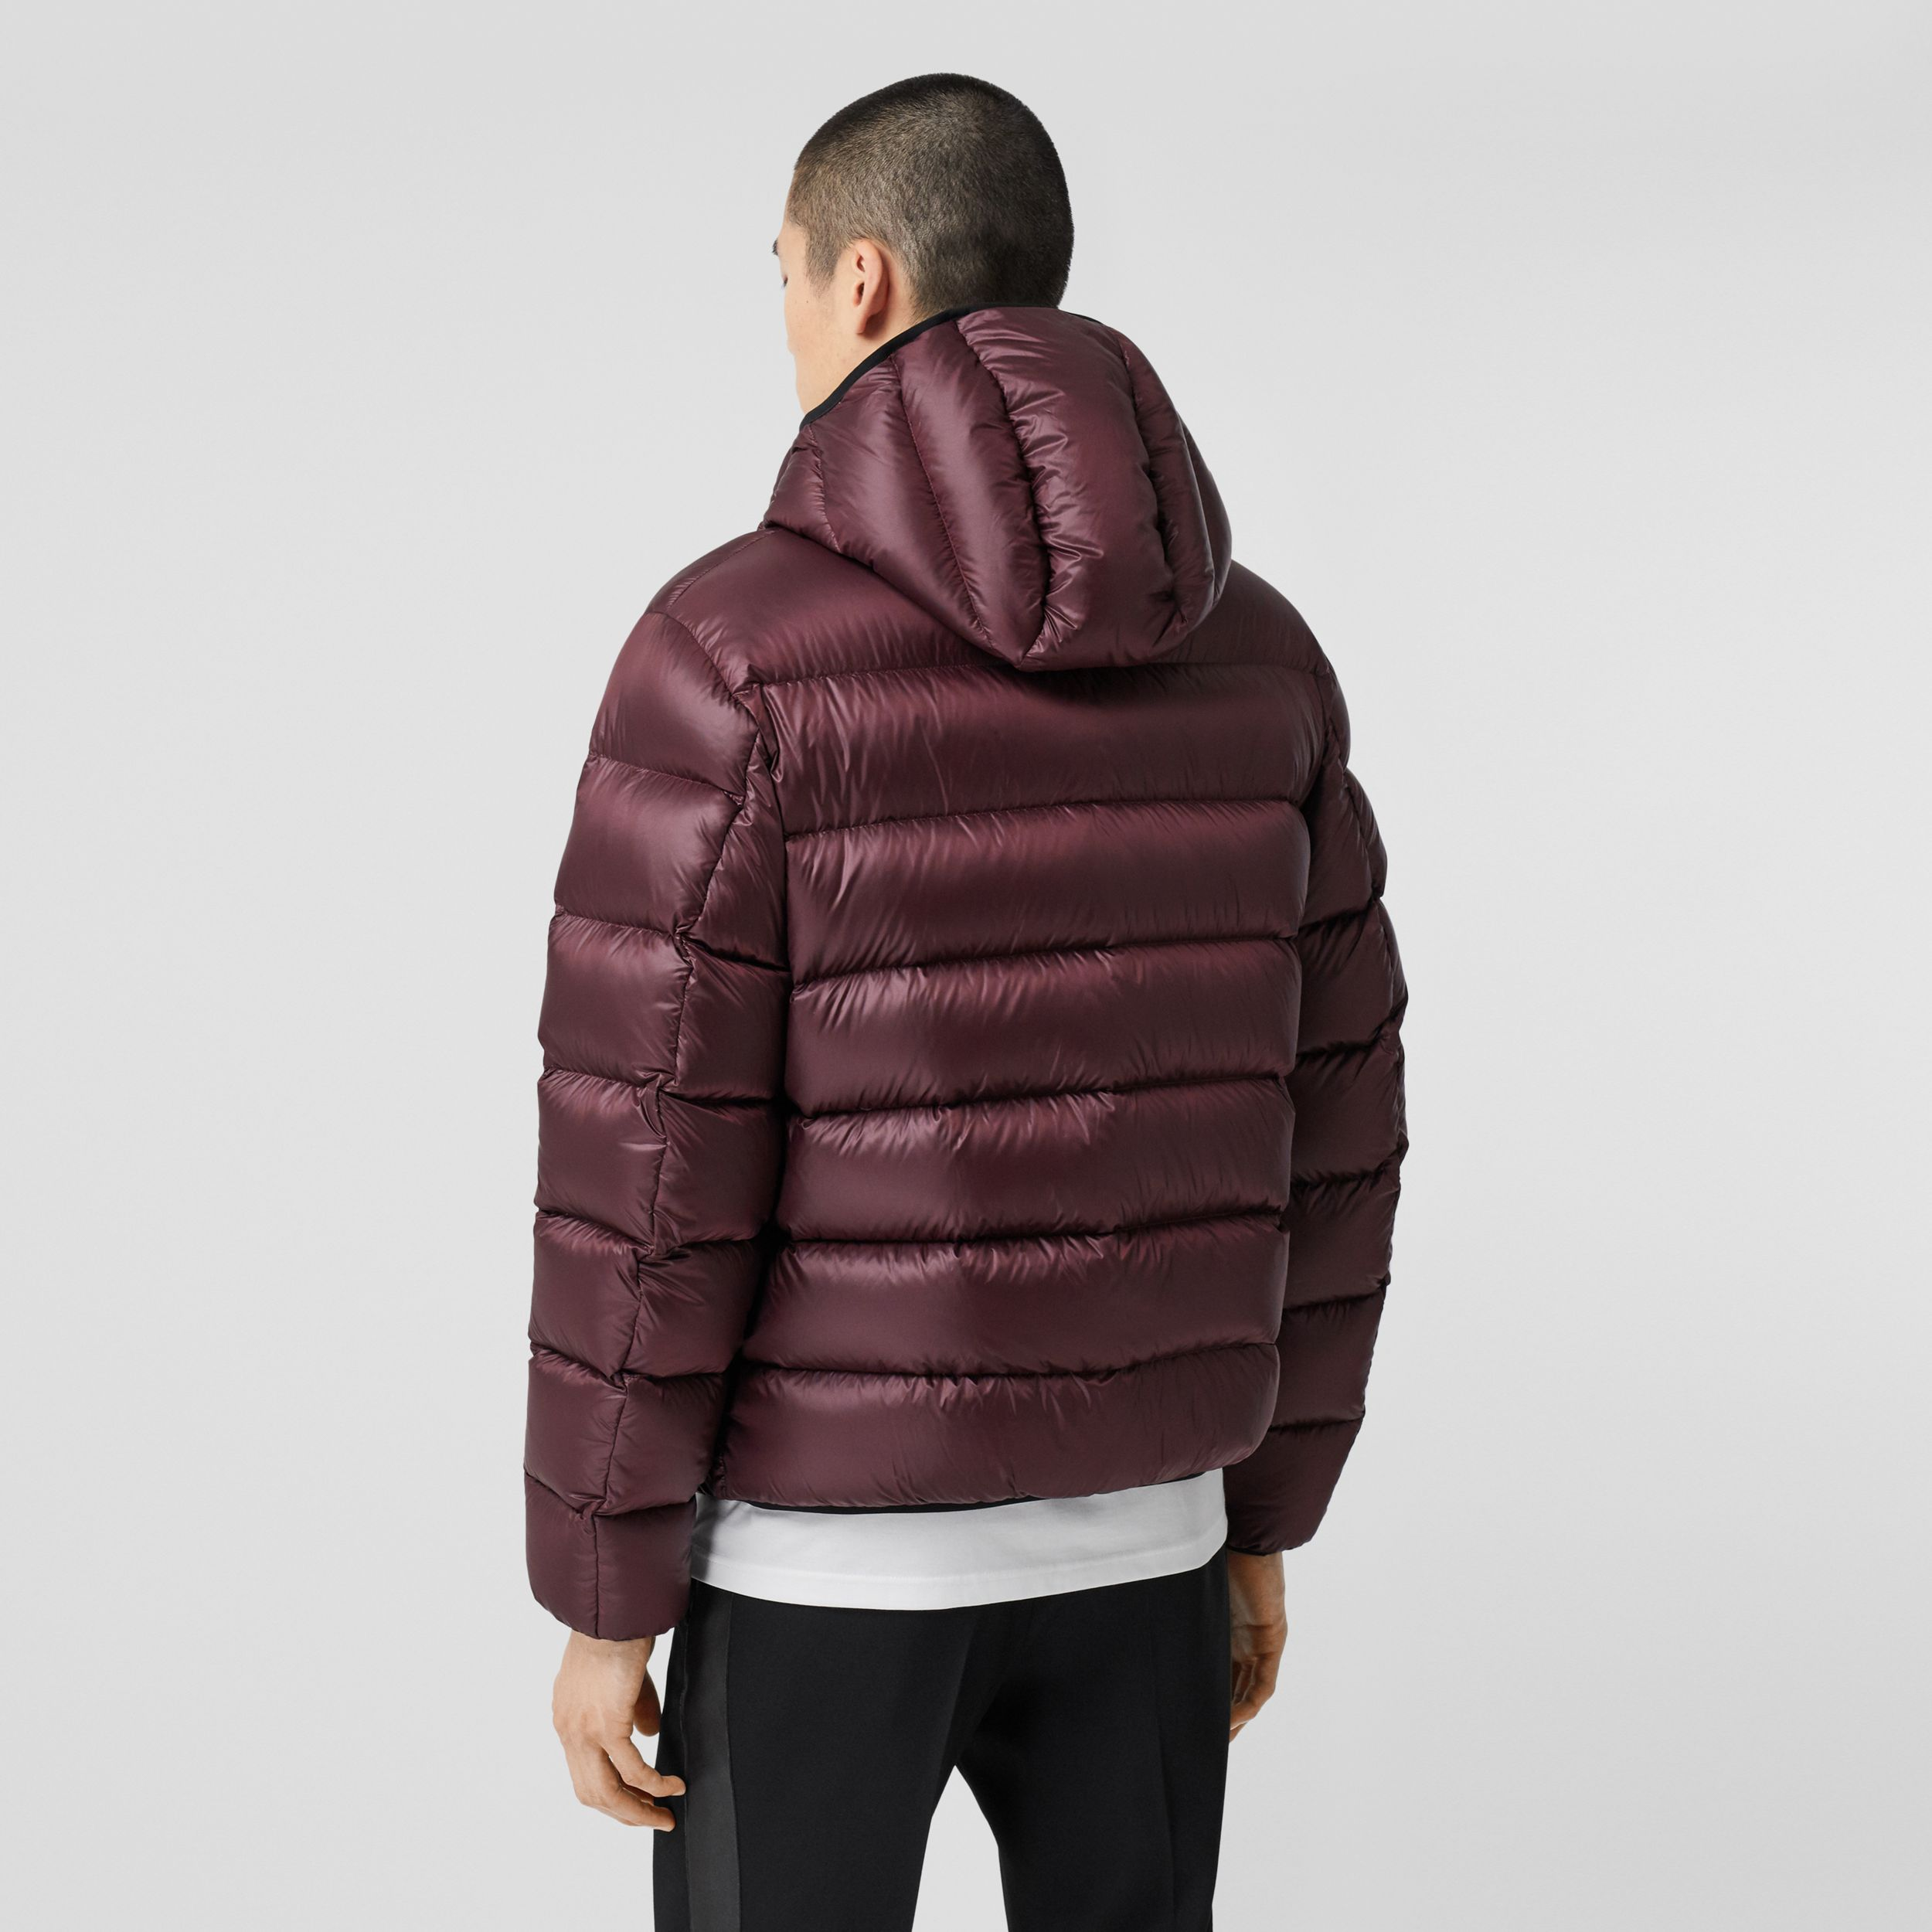 Logo Appliqué Hooded Puffer Jacket in Dark Plum | Burberry Canada - 3